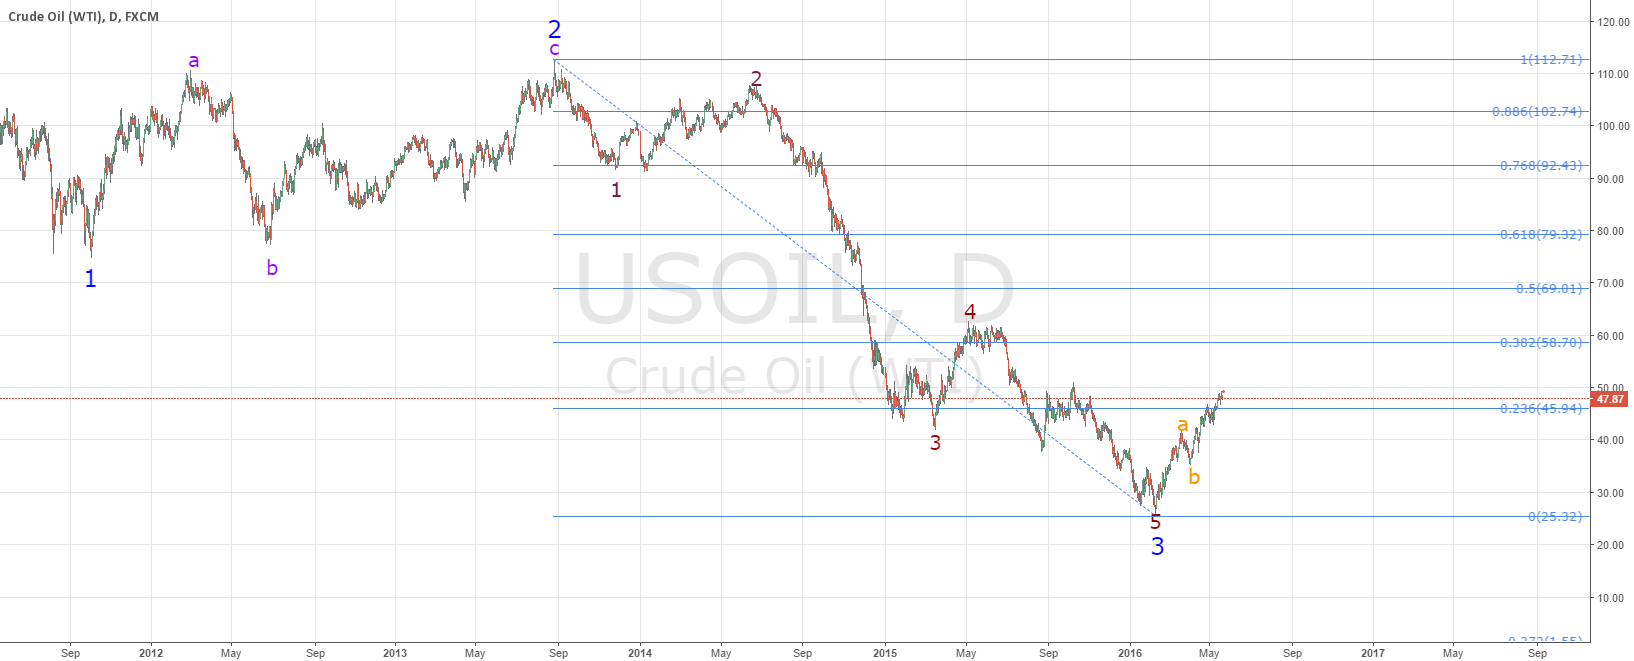 Crude oil going for 20